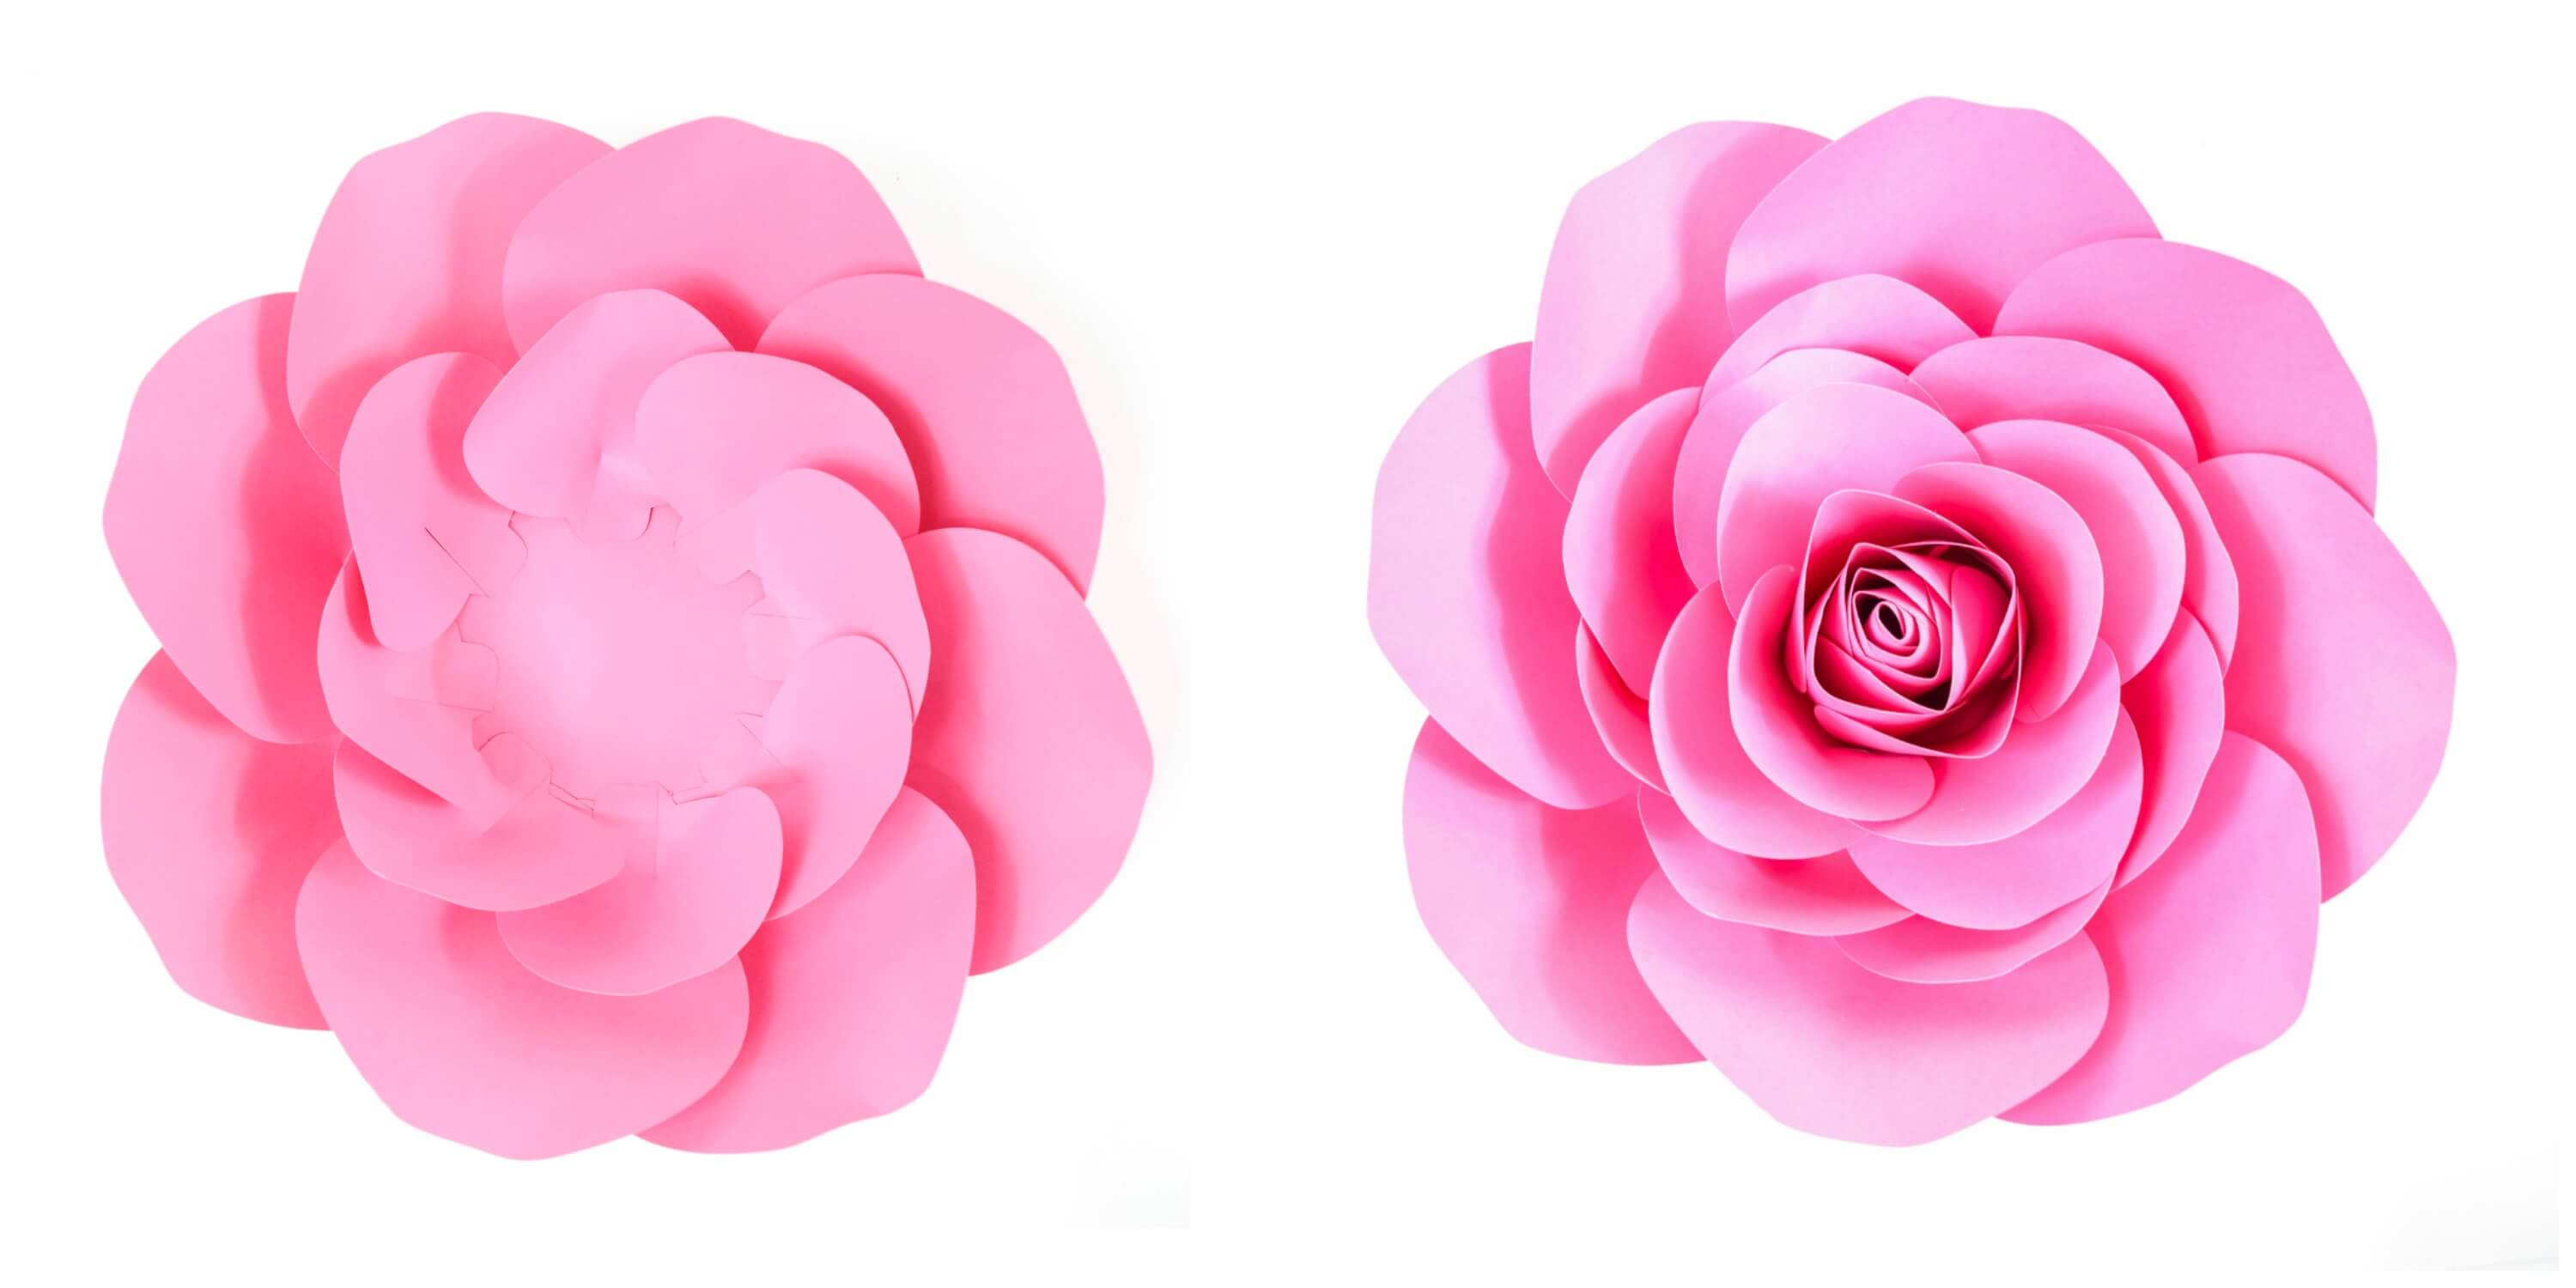 photograph about Rose Template Printable known as Absolutely free Huge Paper Rose Template: Do it yourself Camellia Rose Guide